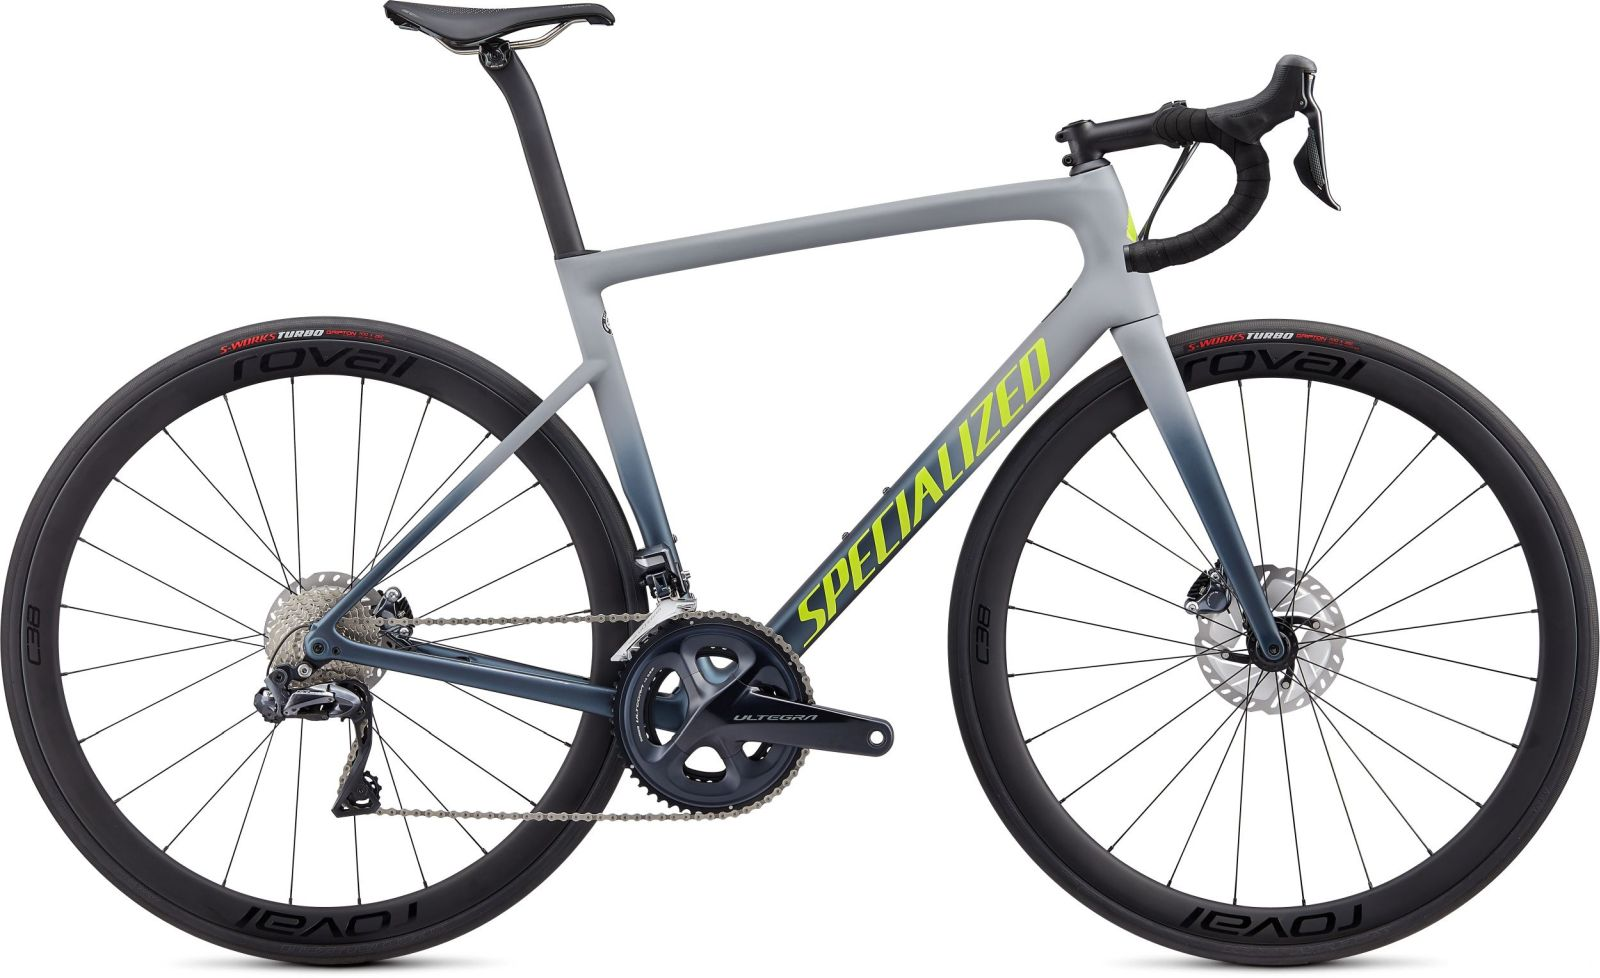 Specialized Tarmac SL6 Disc Expert Ultegra Di2 - satin cool grey/cast battleship/team yellow 44